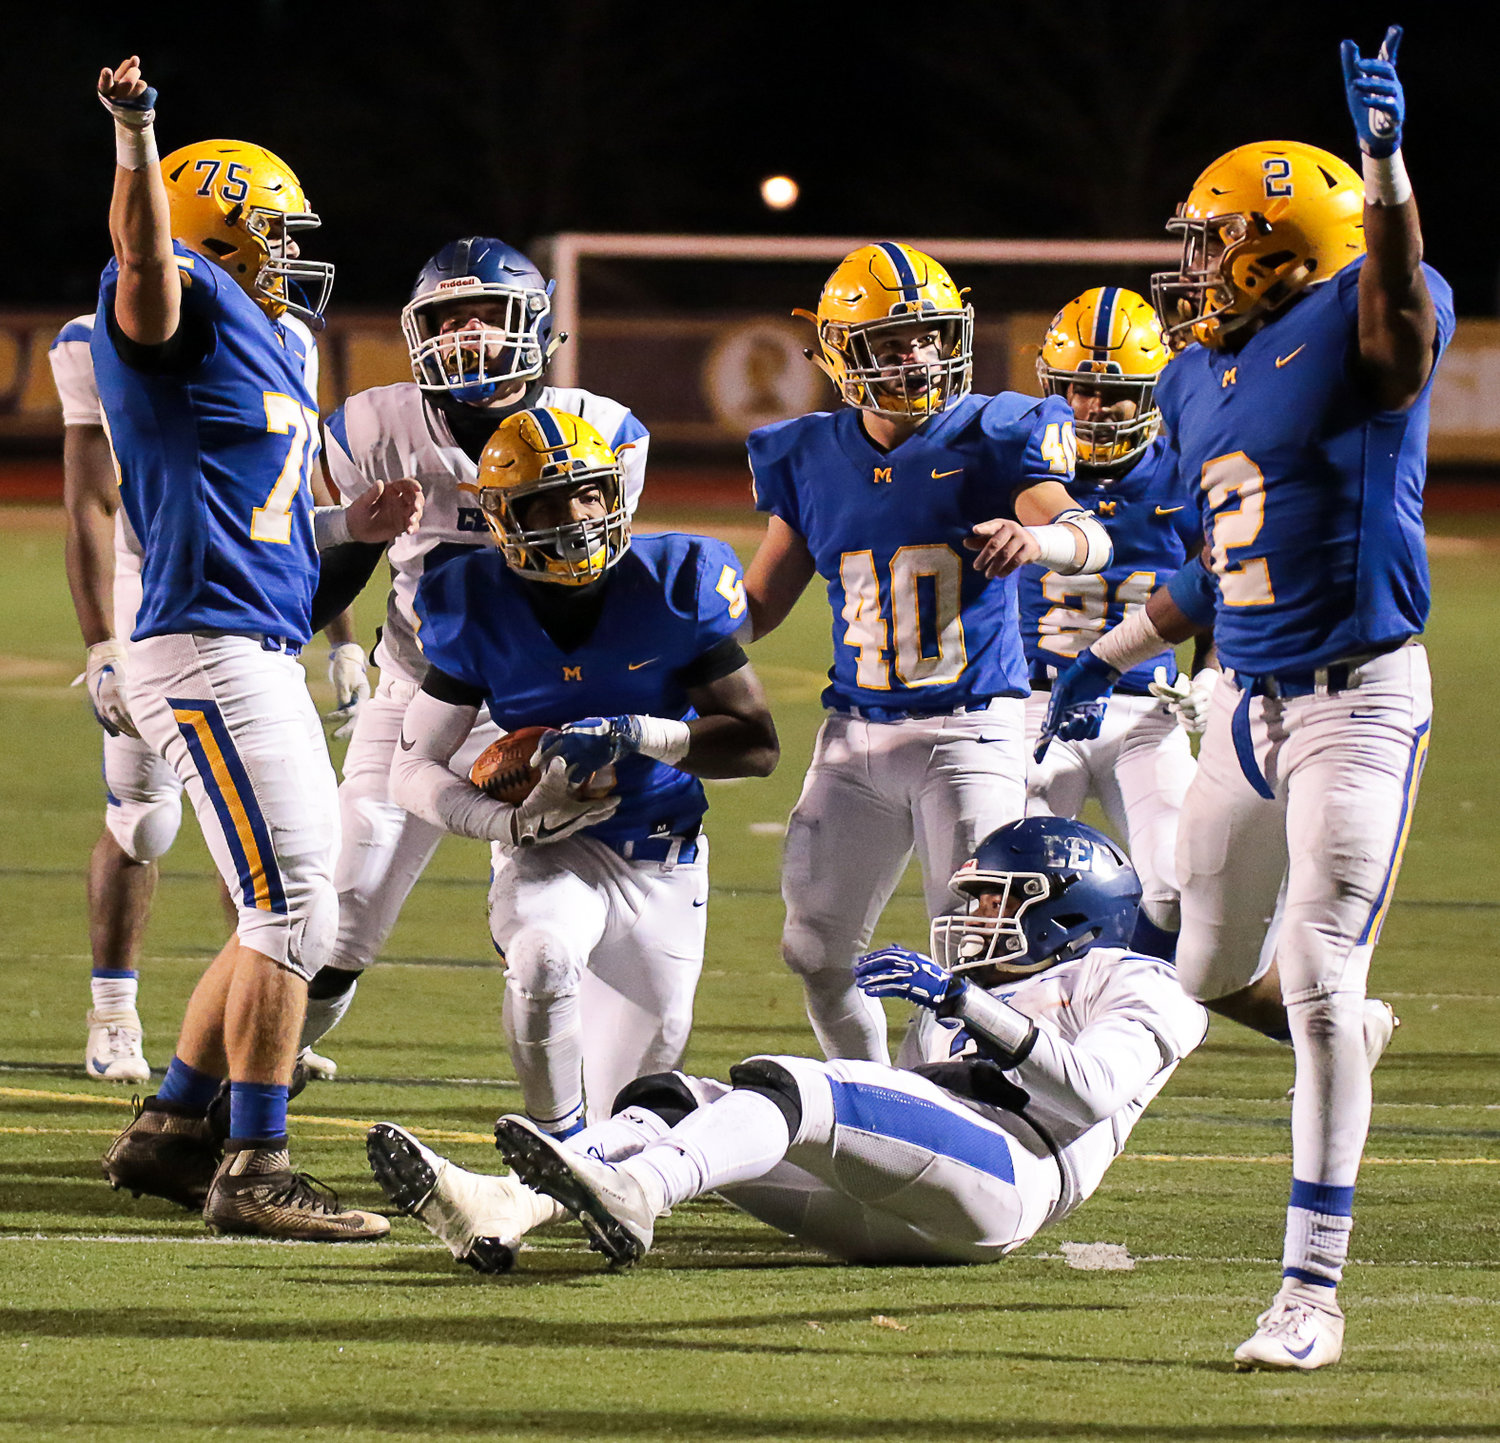 Morgan Billman (No. 75), Gage Radabaugh (No. 40) and Richie Sykes (No. 2) celebrate a fumble recovery by Trayvon Joseph (No. 5, with the ball) in the third quarter of Middletown's 21-14 win over Conwell-Egan at Milton Hershey High School in the PIAA 3A state quarterfinals Nov. 23.